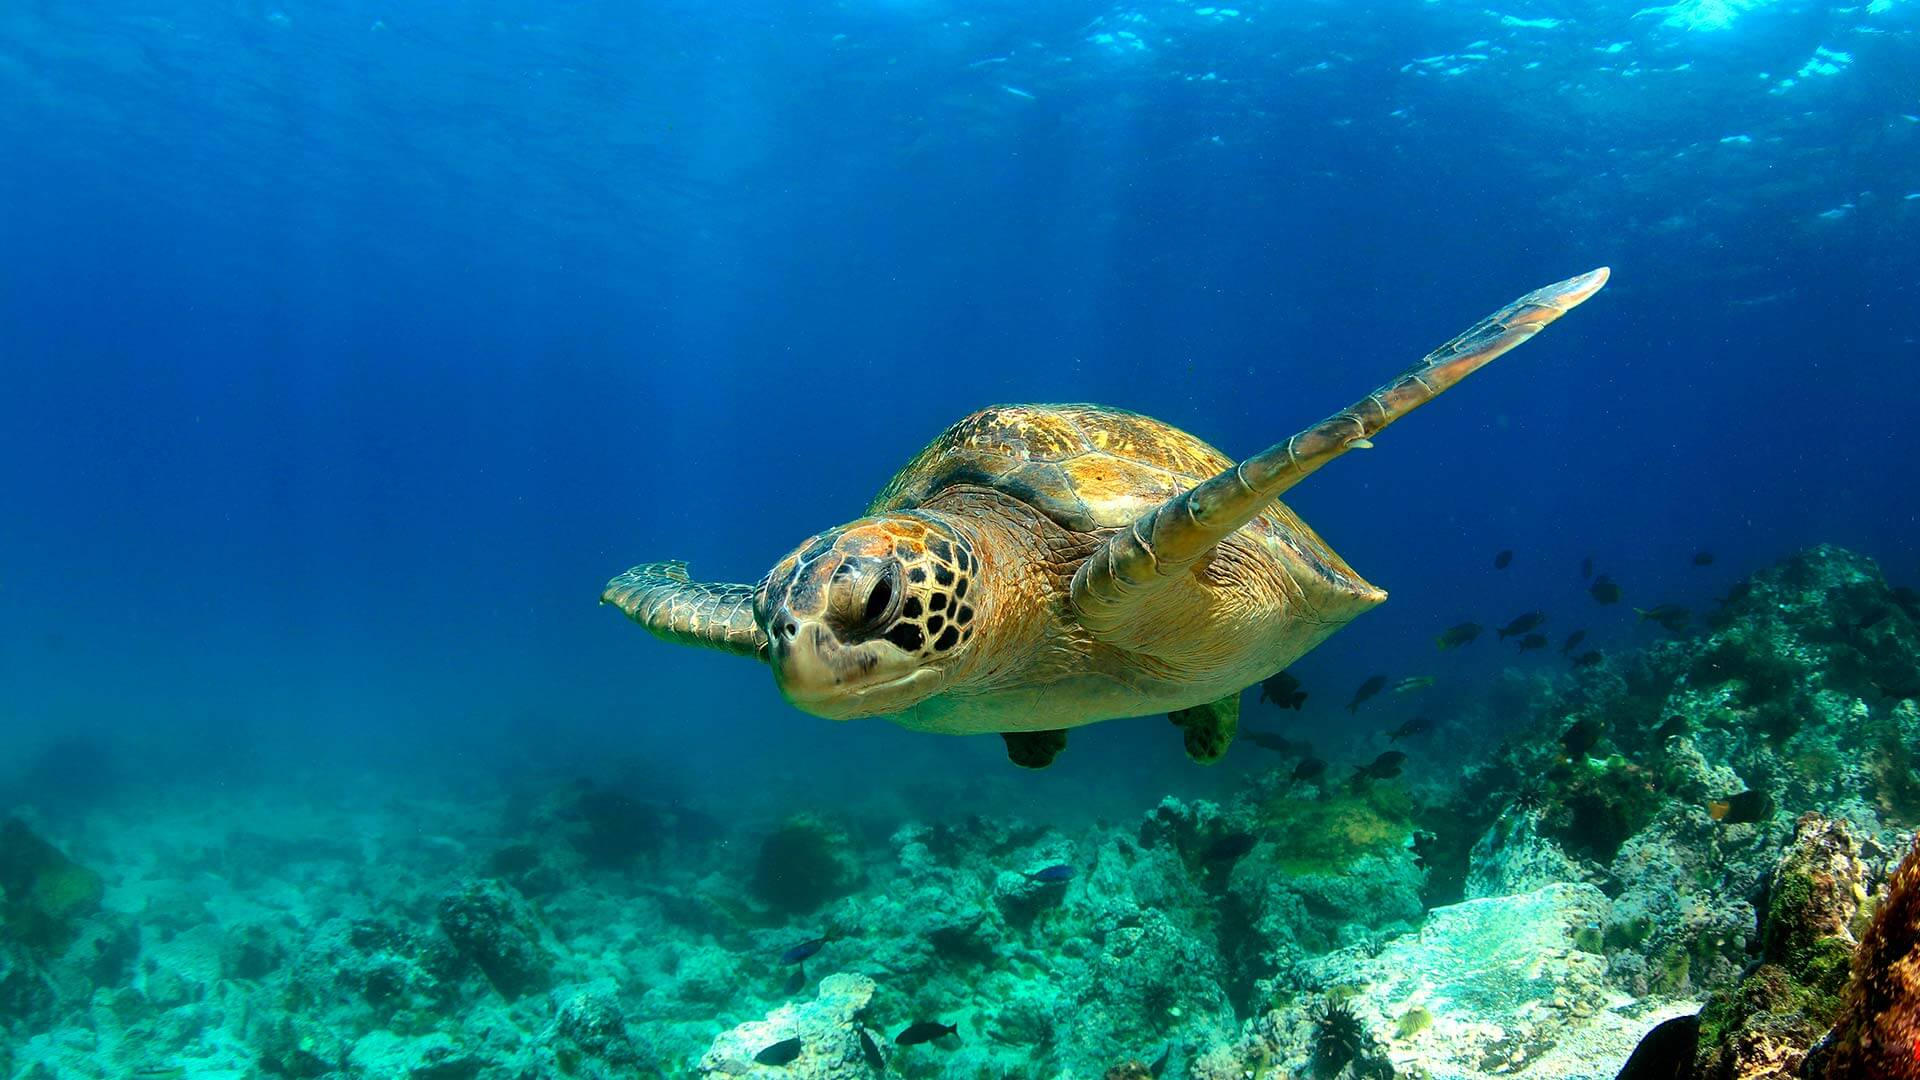 galapagos green seaturtle swimming in clear blue water